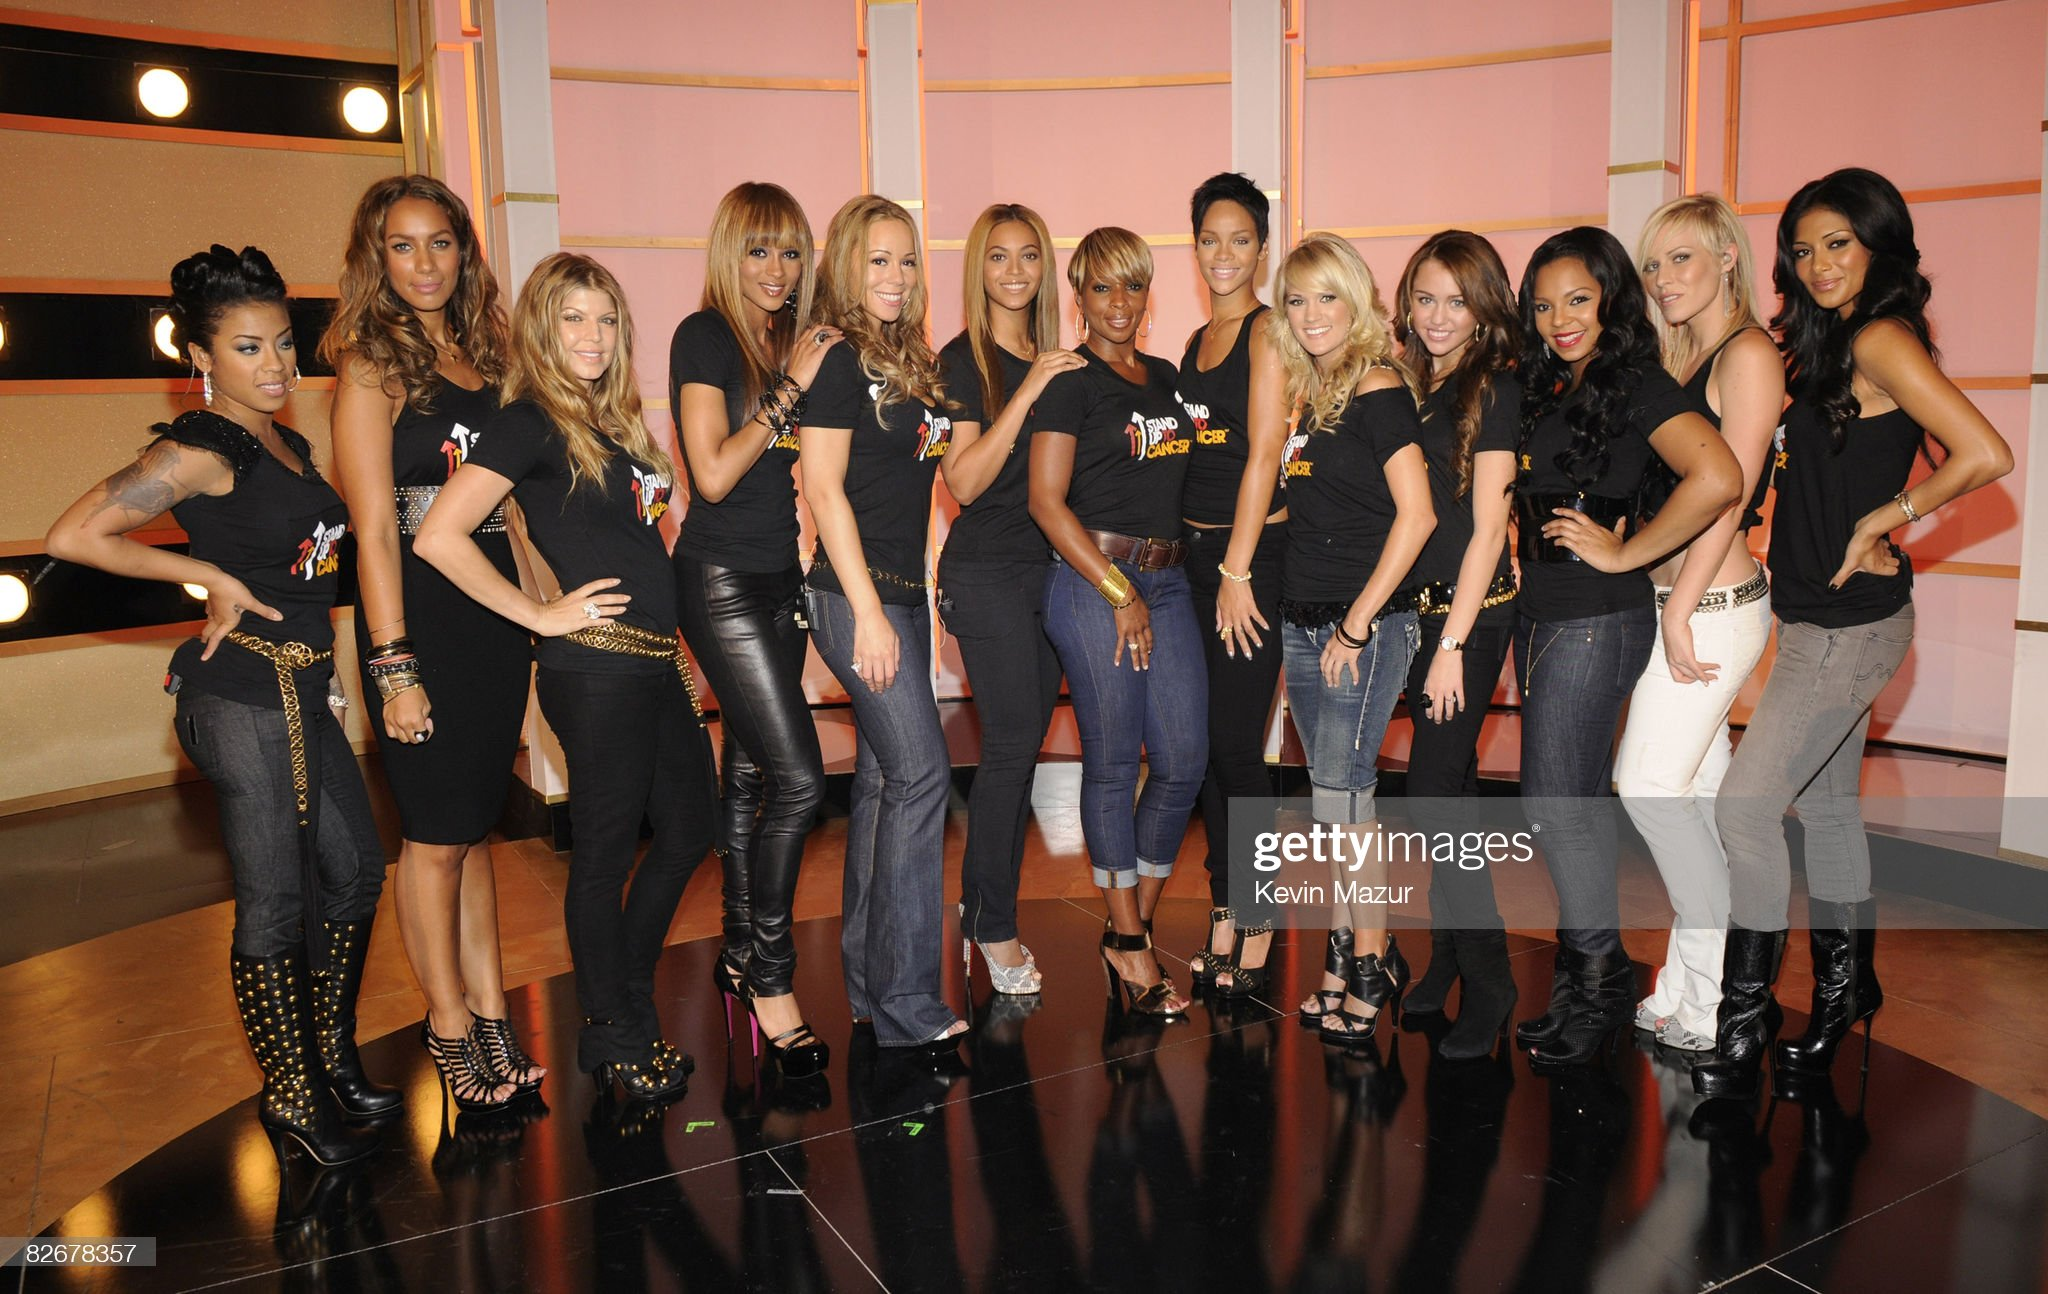 ¿Cuánto mide Mariah Carey? - Altura - Real height Thirteen-of-the-most-talented-female-performers-joined-together-on-picture-id82678357?s=2048x2048